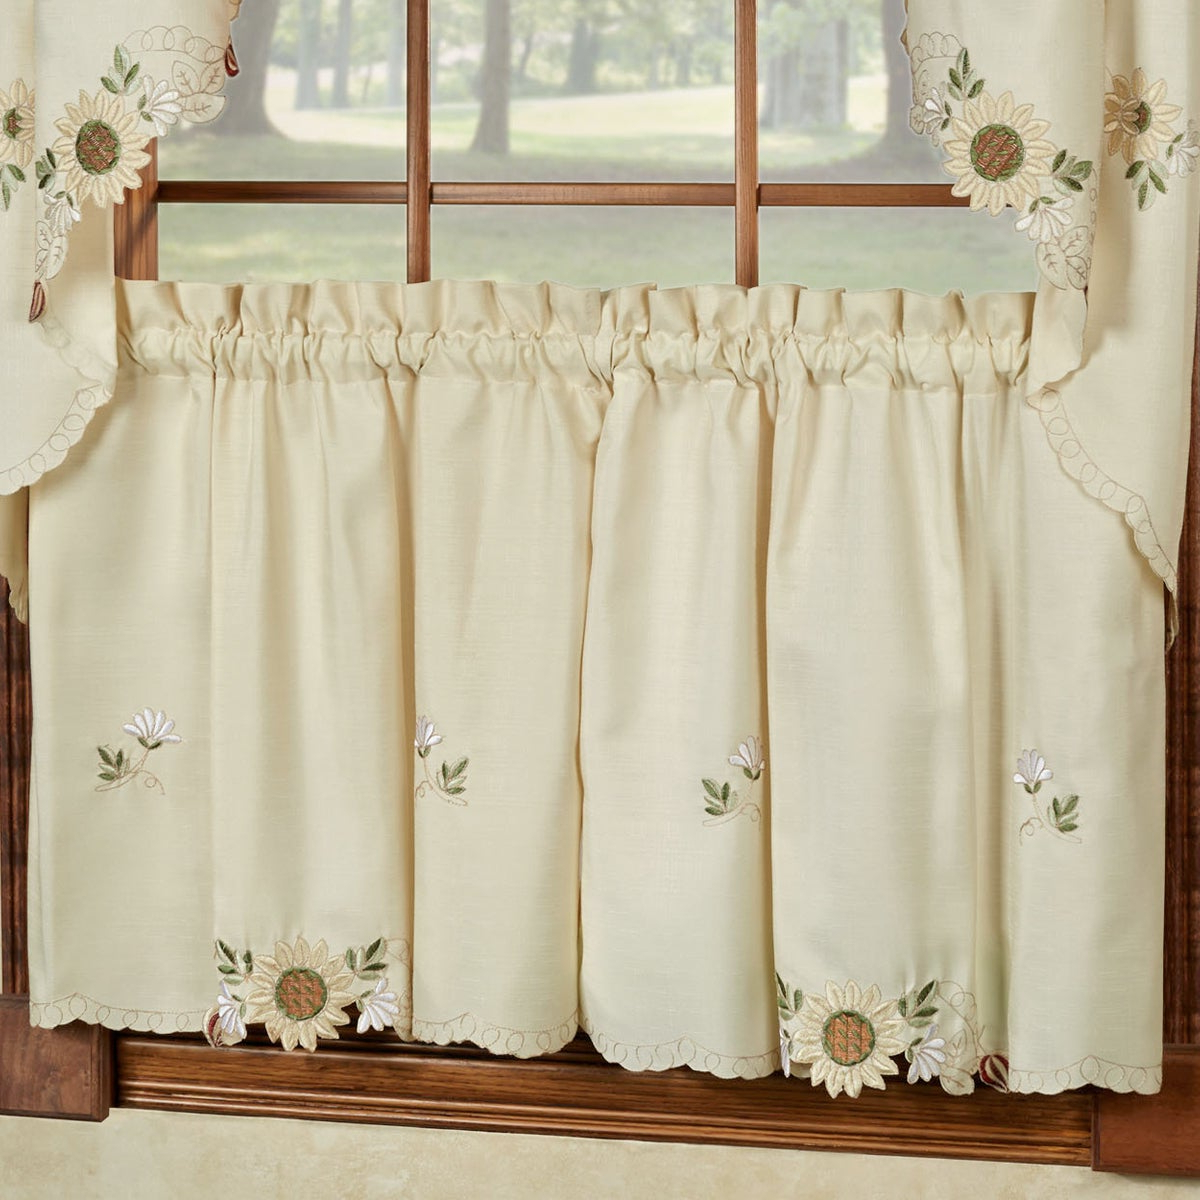 Embroidered Sunflower Kitchen Curtains Separates Tier, Swag And Valance Options Regarding Latest Sunflower Cottage Kitchen Curtain Tier And Valance Sets (View 9 of 20)